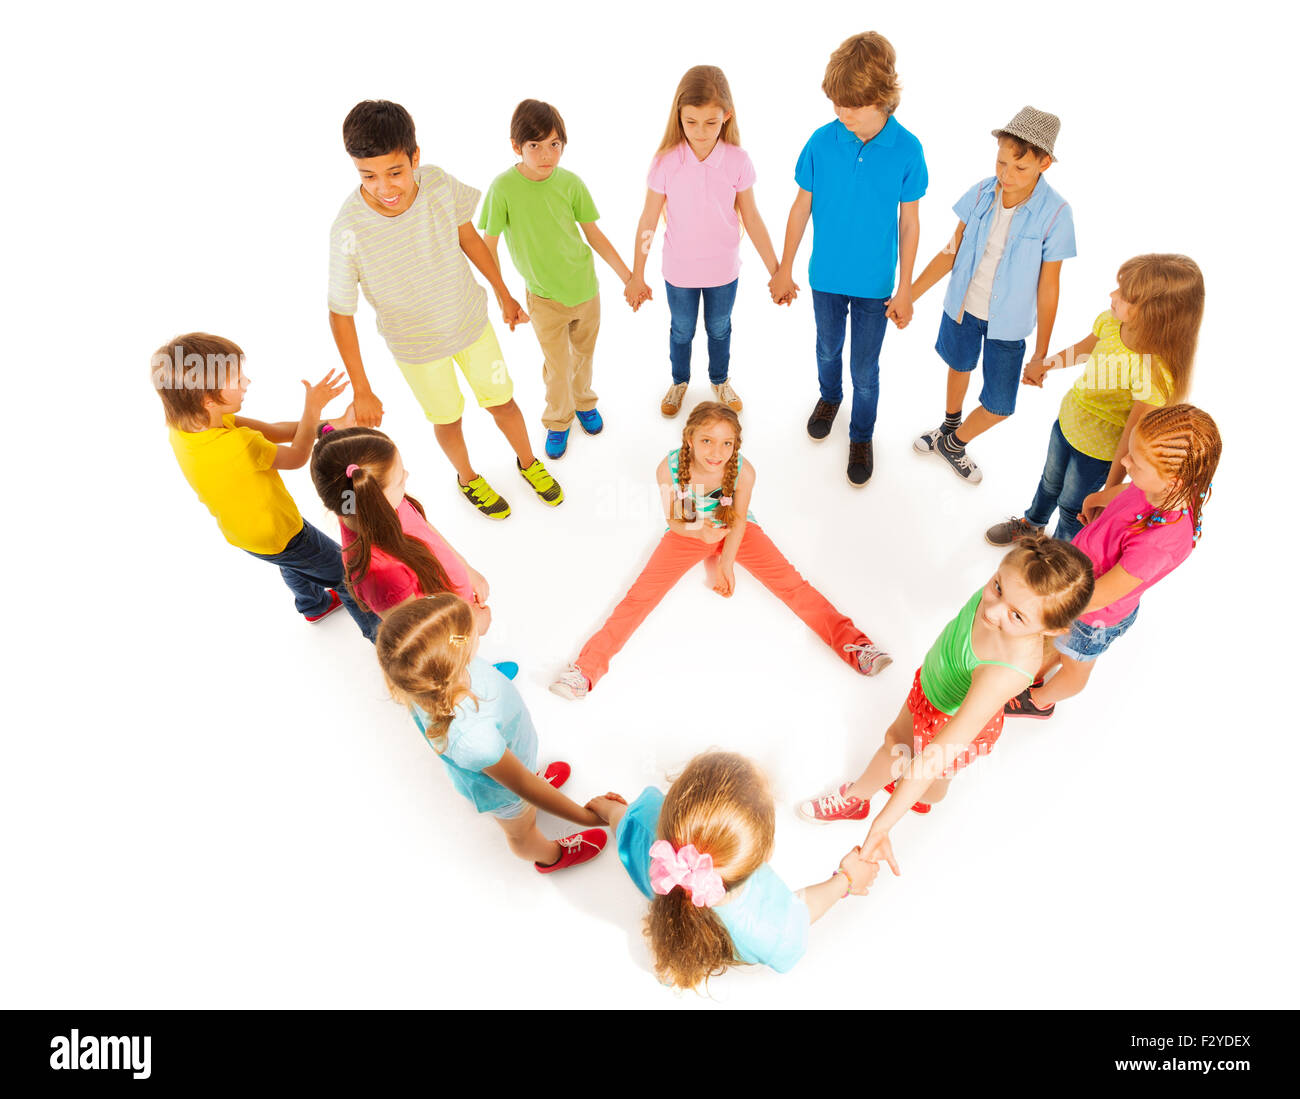 Girl sit on the floor with friends encircle her - Stock Image